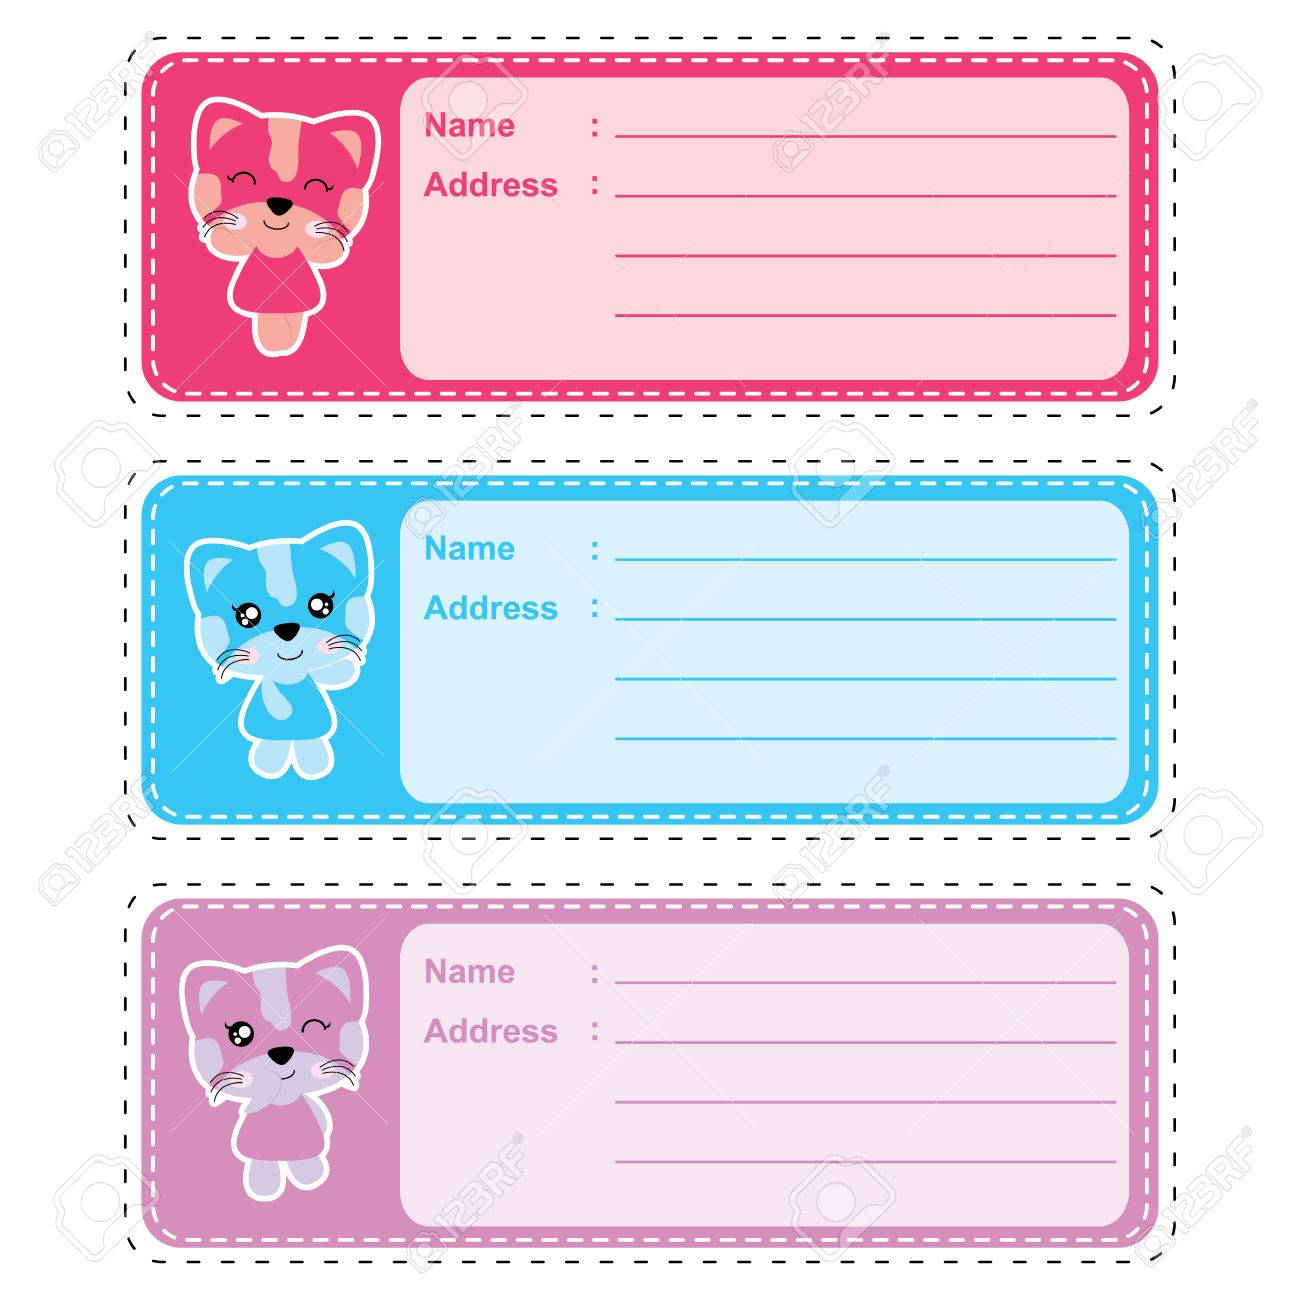 address label vector cartoon with cute colorful cat girl suitable